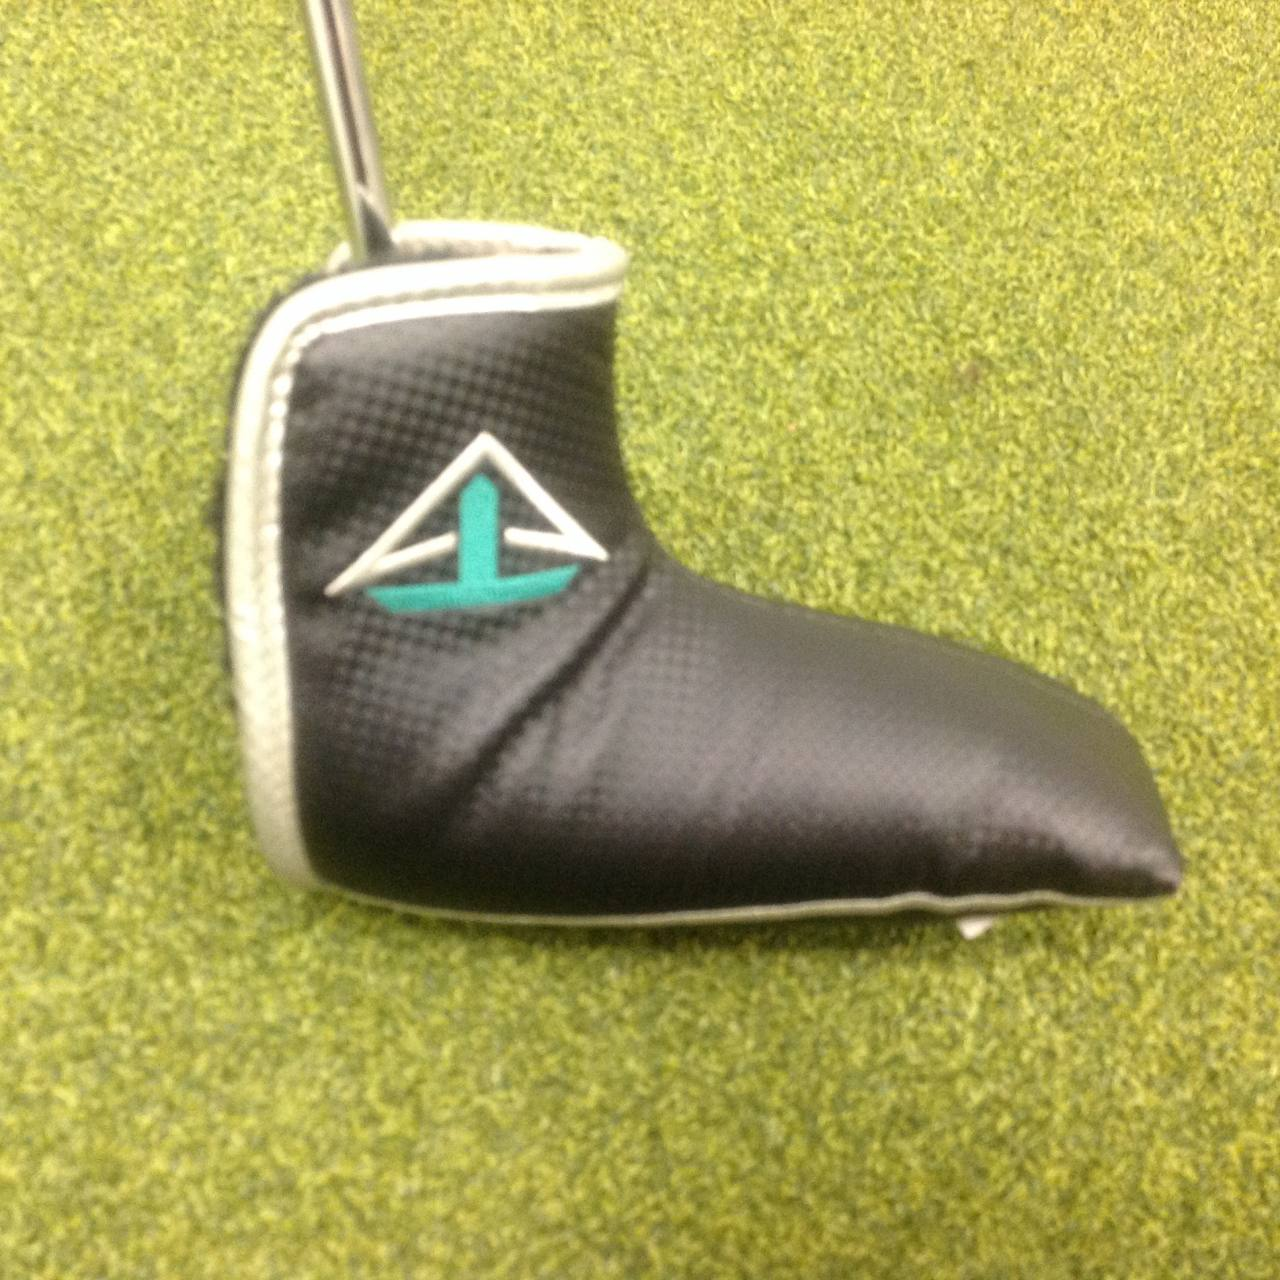 Odyssey Toulon Design San Diego Putter With 35 Toulon